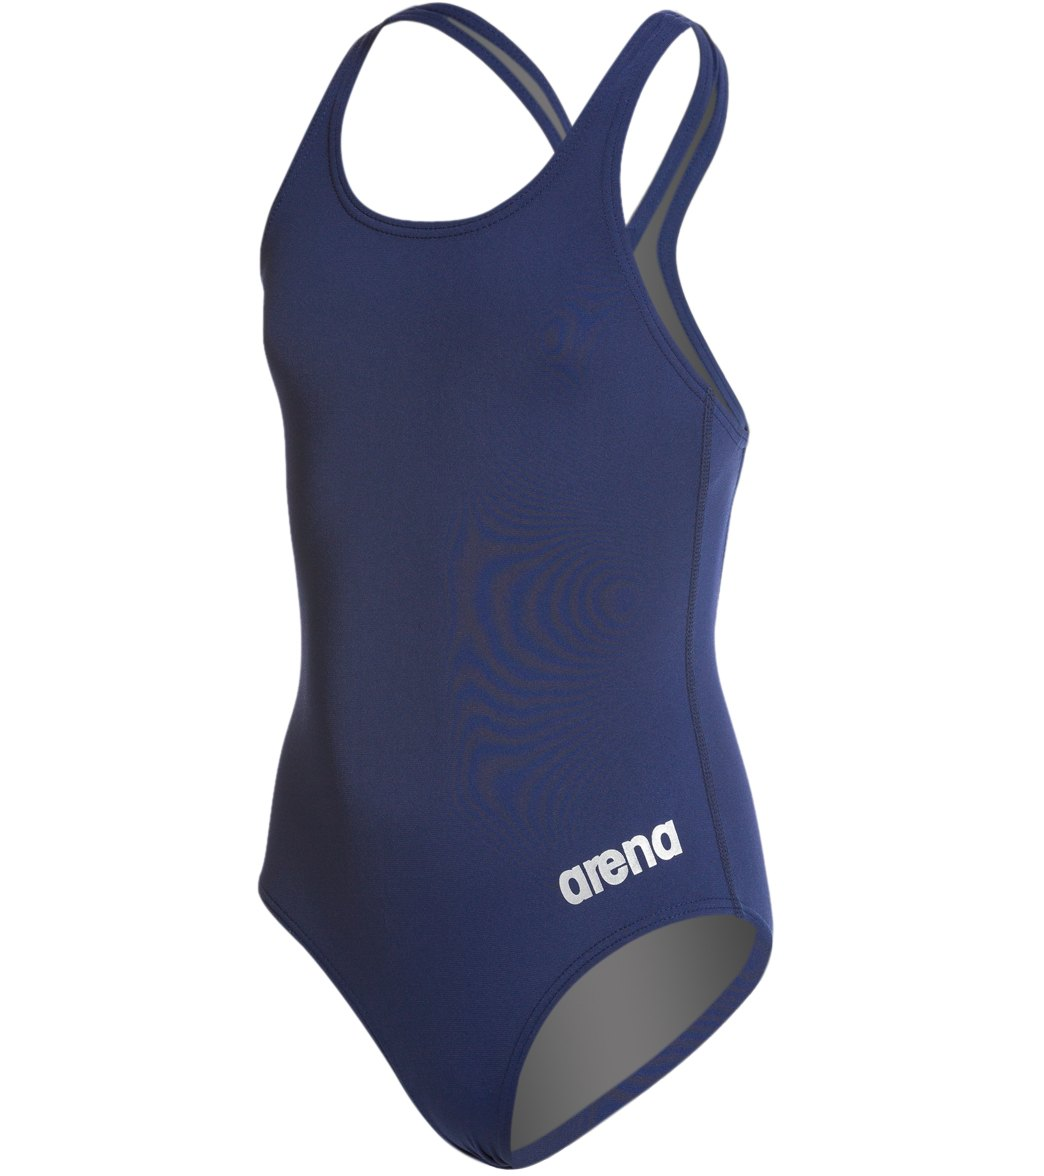 c07f0deffca Arena Girls' Madison Athletic Thick Strap Racer Back One Piece Swimsuit at  SwimOutlet.com - Free Shipping